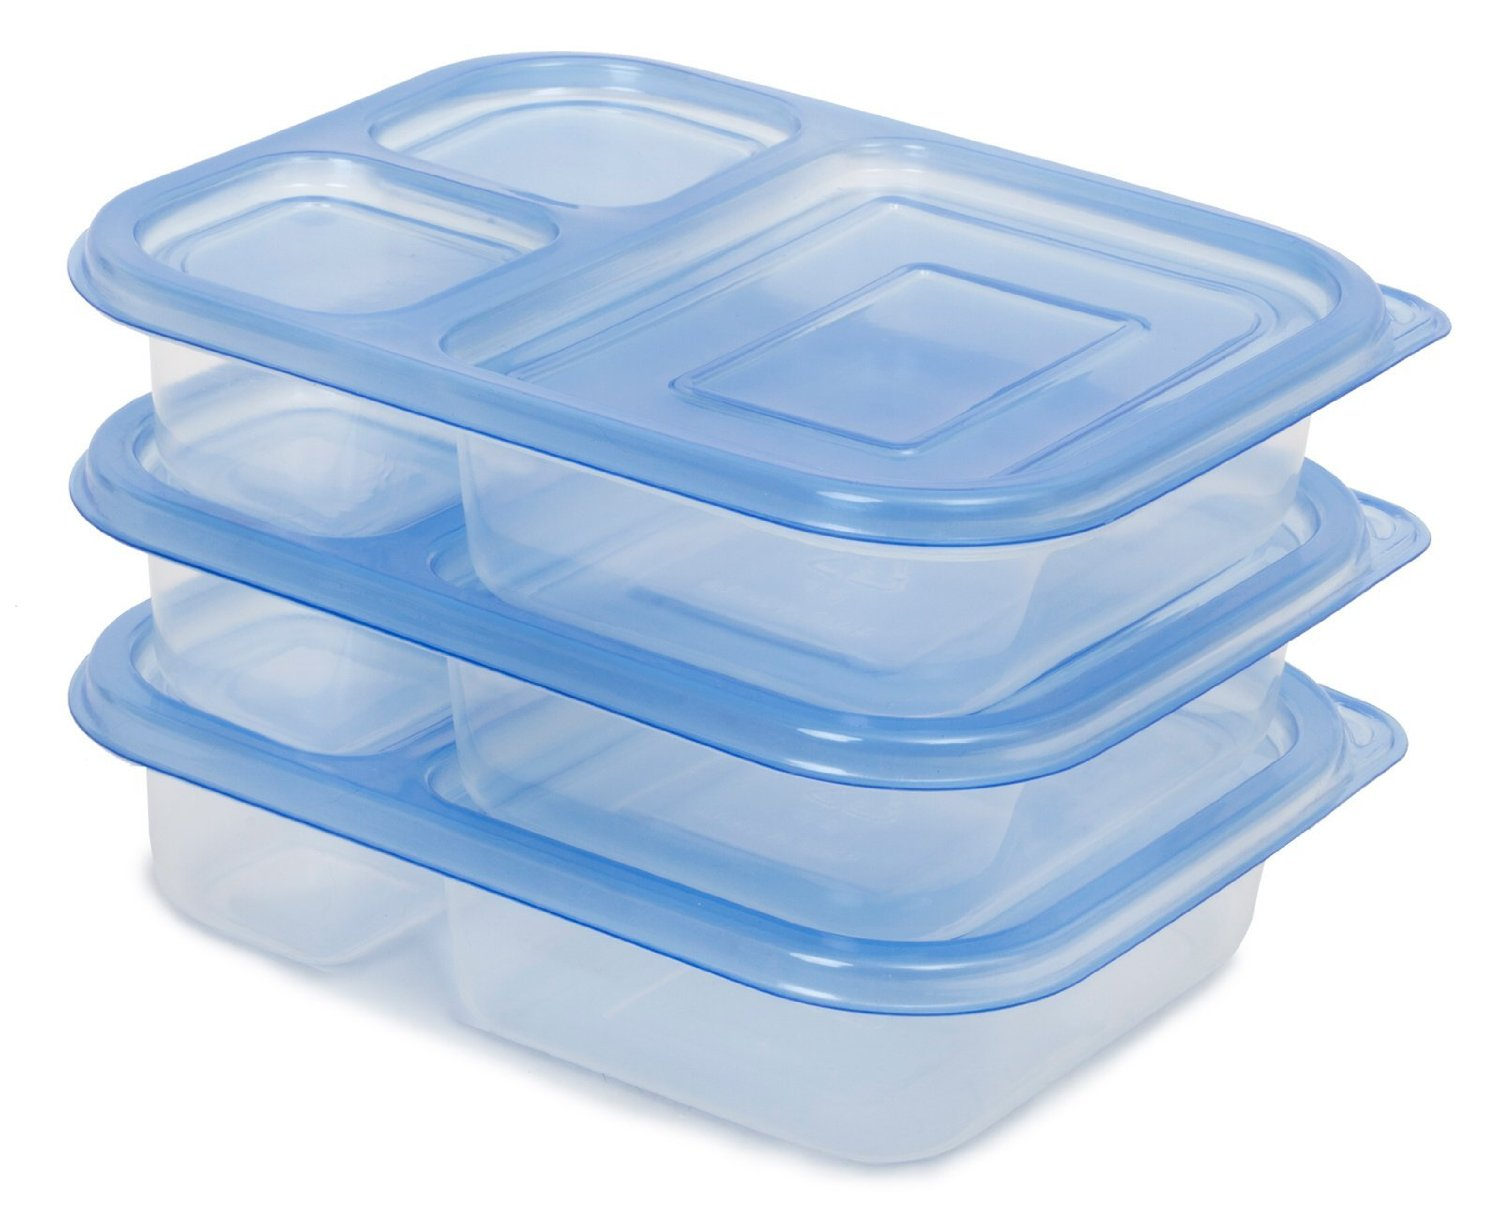 [87% OFF - Sale Ends Jan 31] Lunch Box / Food Storage Container with Lid (NOT Leak-Proof) | FDA-Approved & Food-Safe (BPA- & Phthalate-Free) | Reusable, Microwave-Safe | 3-Compartment, Set of 3